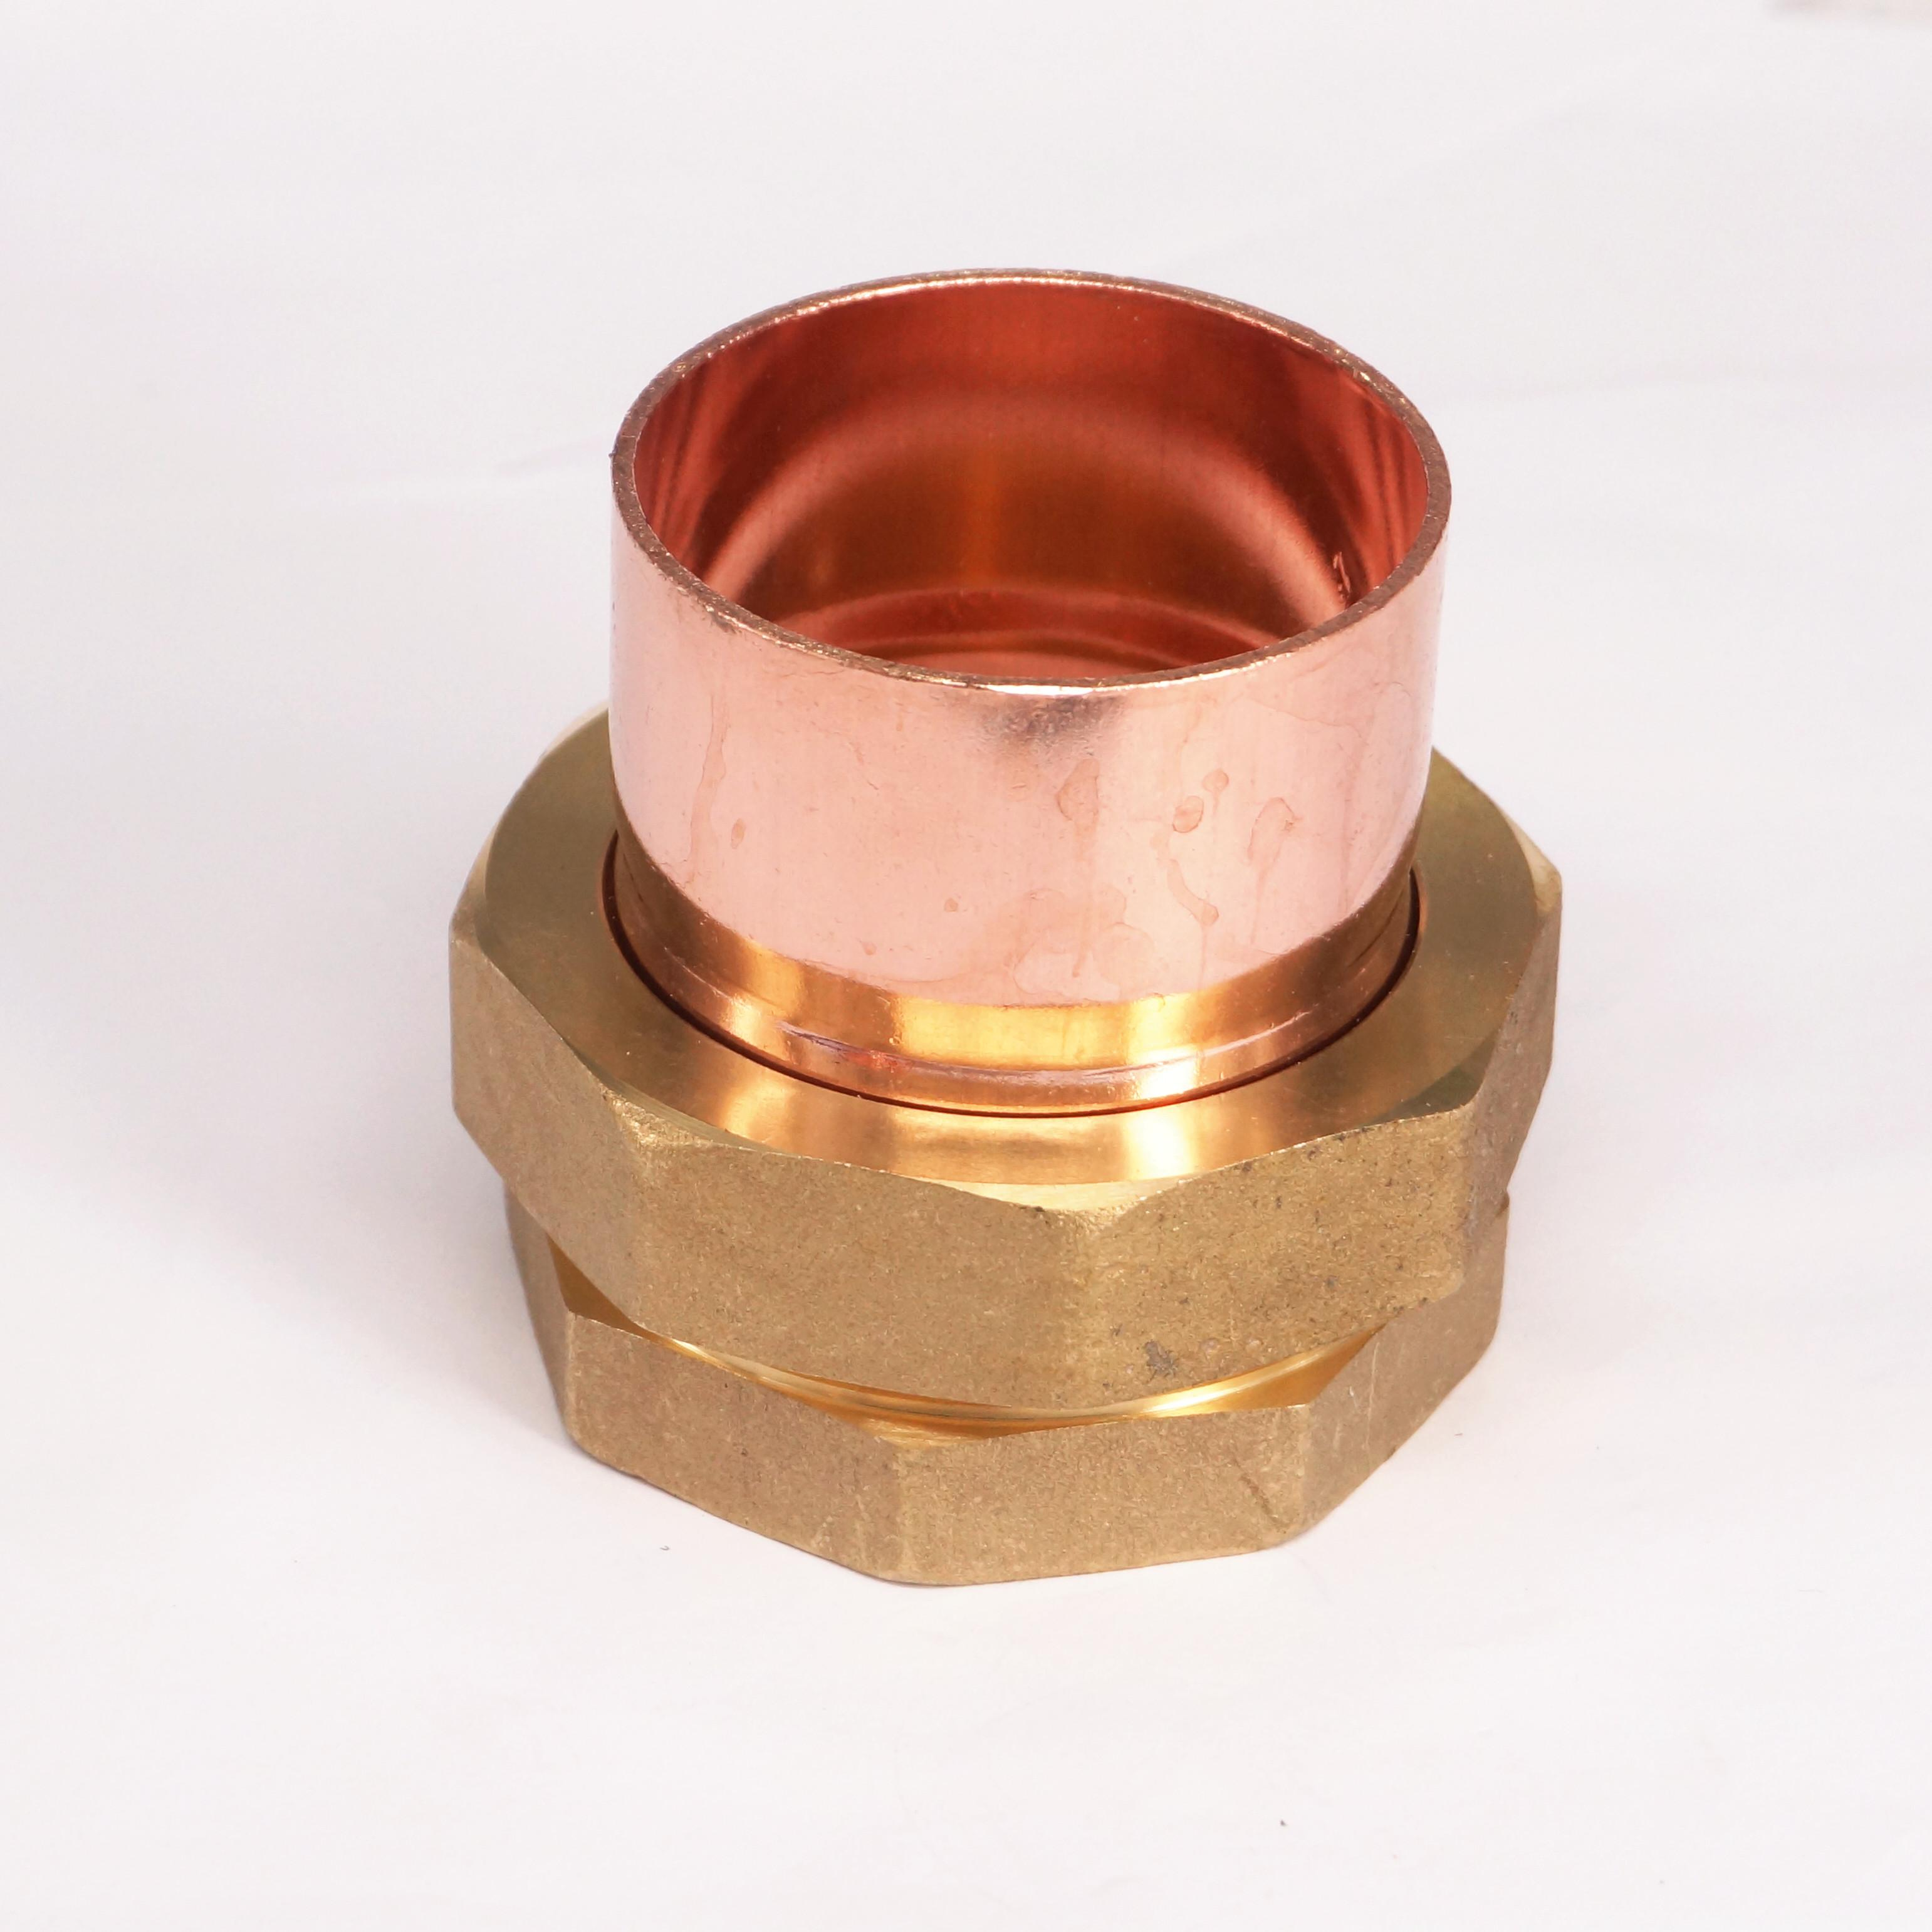 2 BSP Female Thread x 54mm Inner Diameter Brass Socket Union to Copper End Feed Pipe Fitting for water gas oil